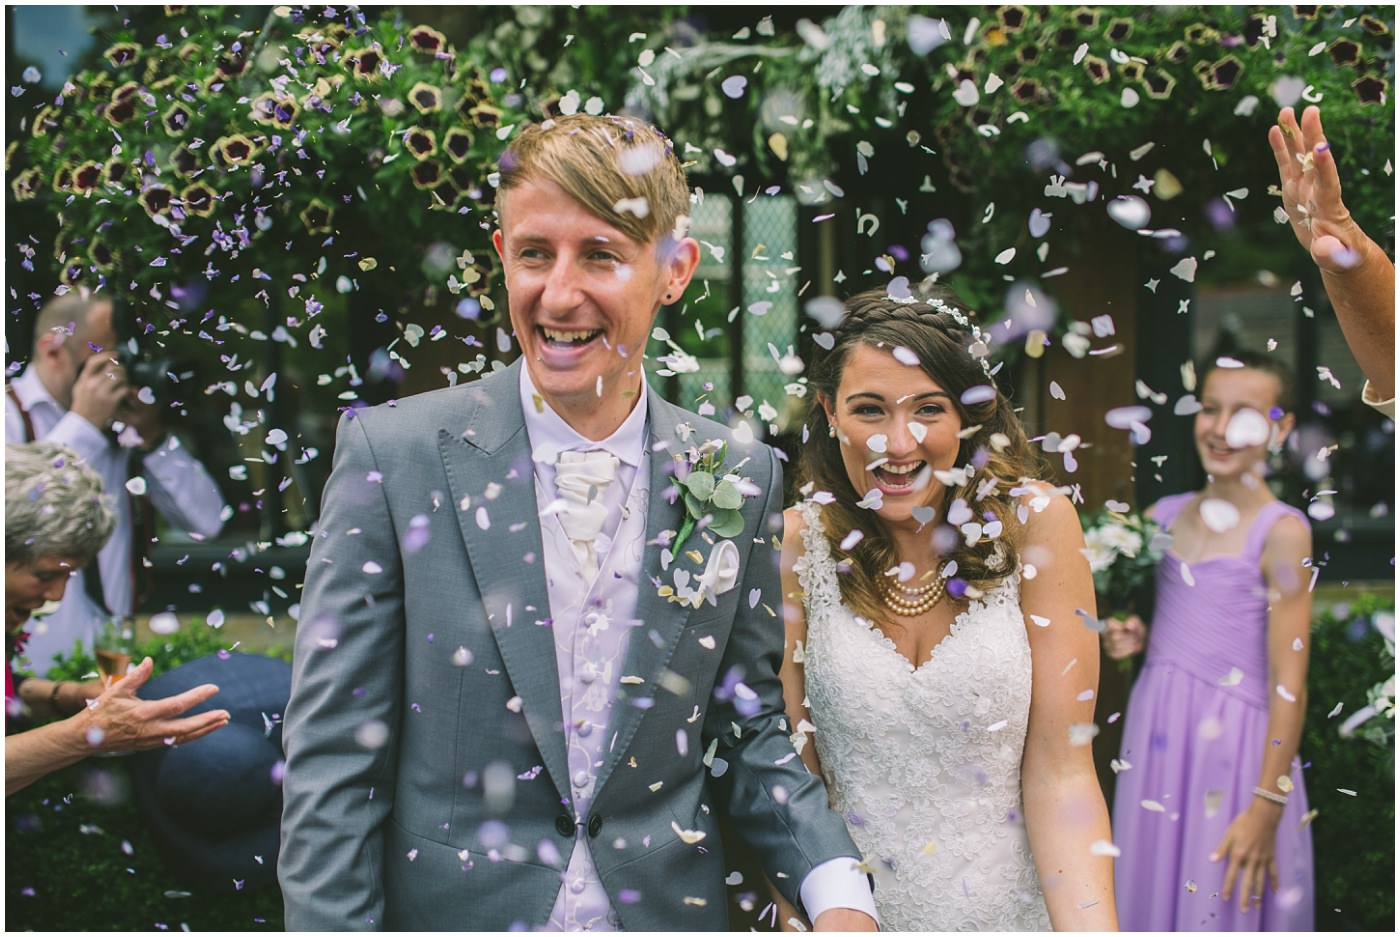 masses of confetti shower the bride and groom